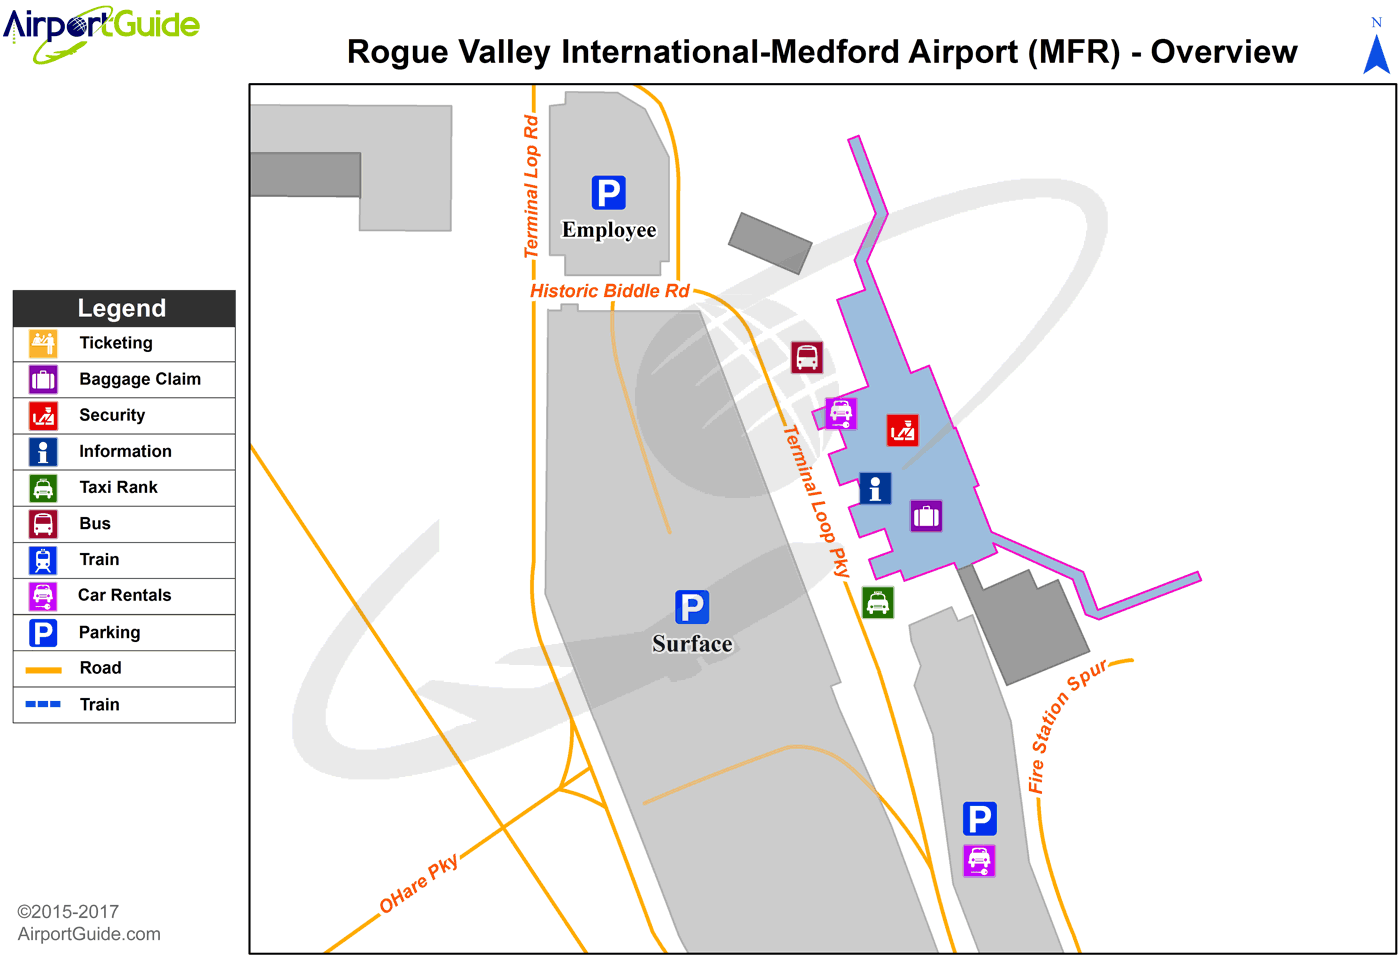 Medford - Rogue Valley International - Medford (MFR) Airport Terminal Map - Overview